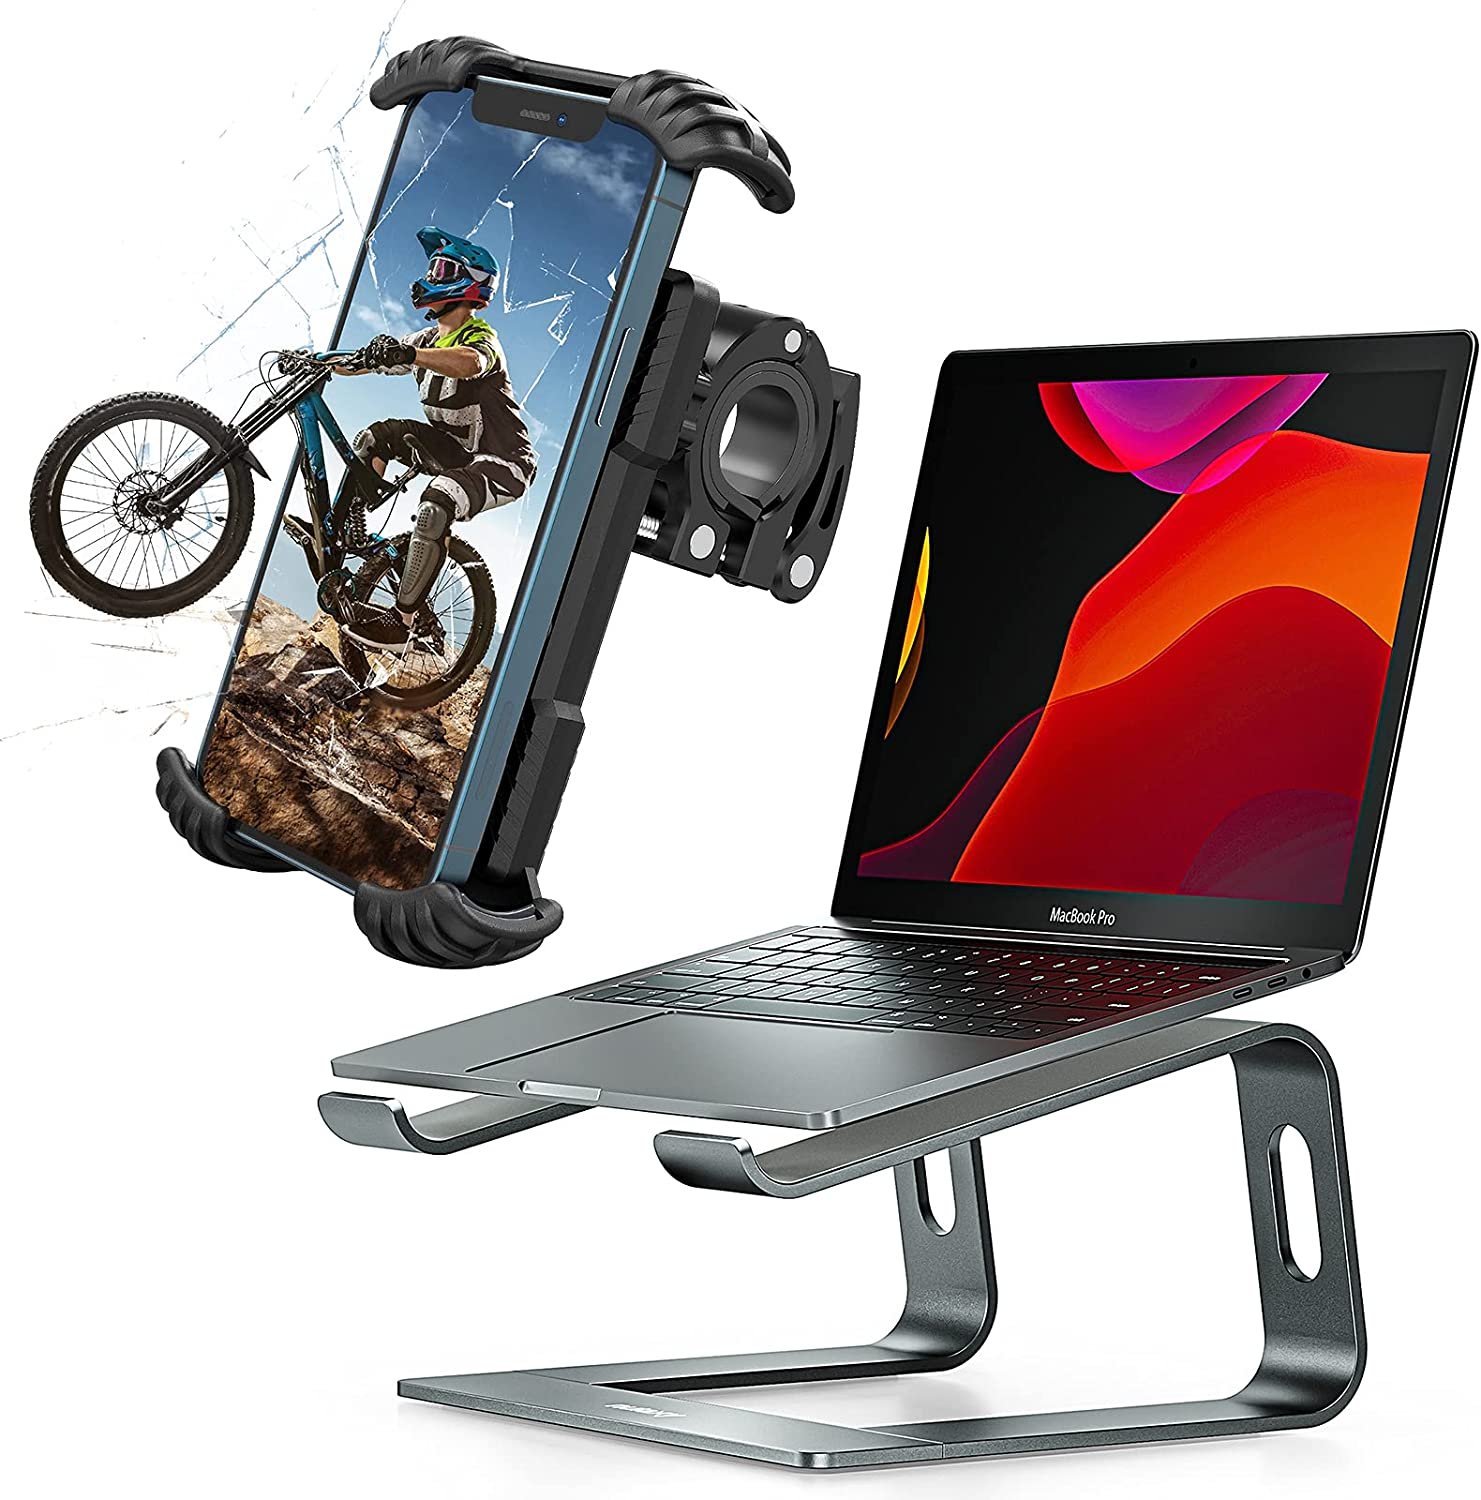 Nulaxy H18 Bike Phone Mount and C3 Laptop Stand , Bicycle Phone Holder & Adjustable Motorcycle Cell Phone Mount Clamp, Compatible with 4.7